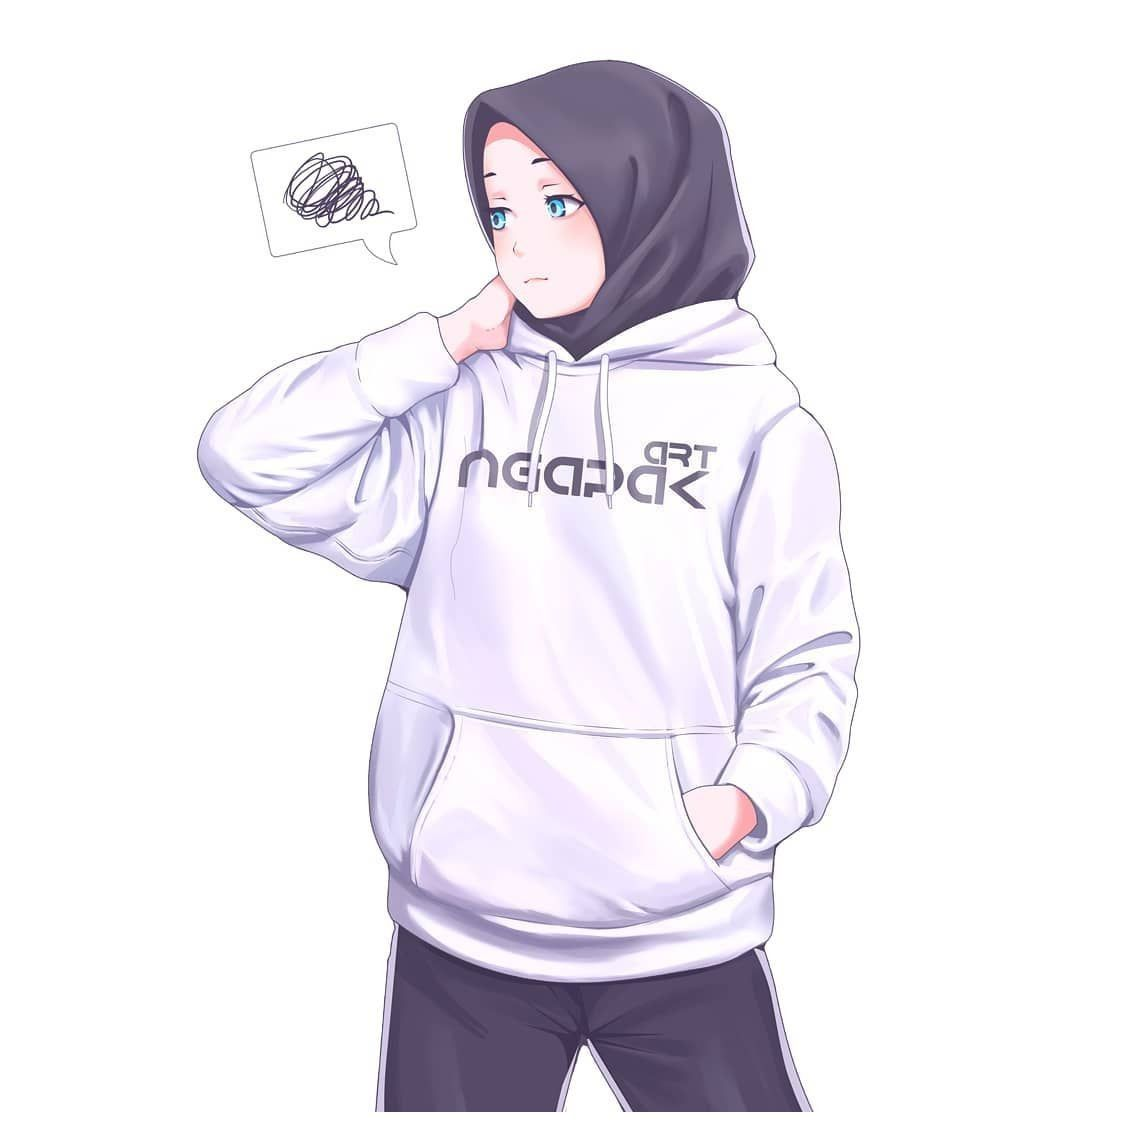 Pin By Reallyweirdhooman On Hijab Cartoon Girl In 2020 Anime Muslim Anime Hoodie Anime Muslimah